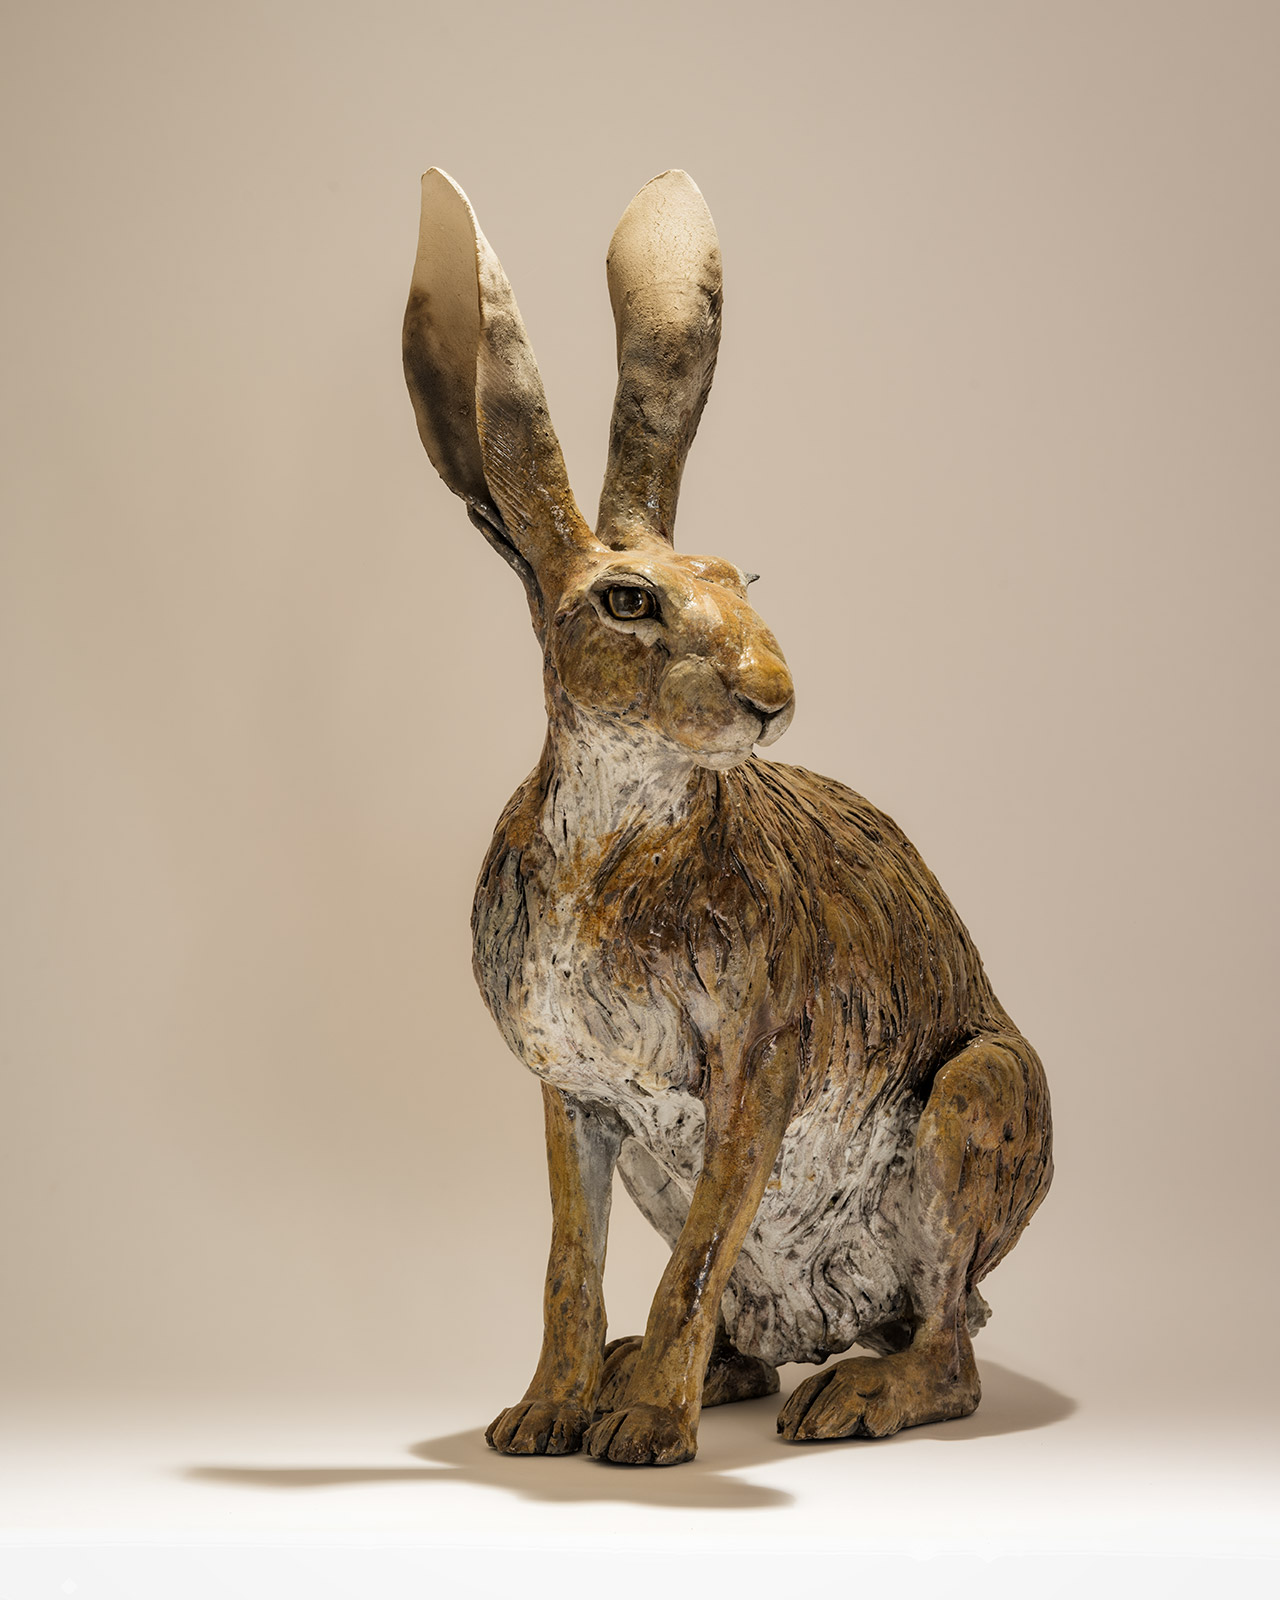 Hare Sculpture (Lockdown Offer) <span>Sold</span>